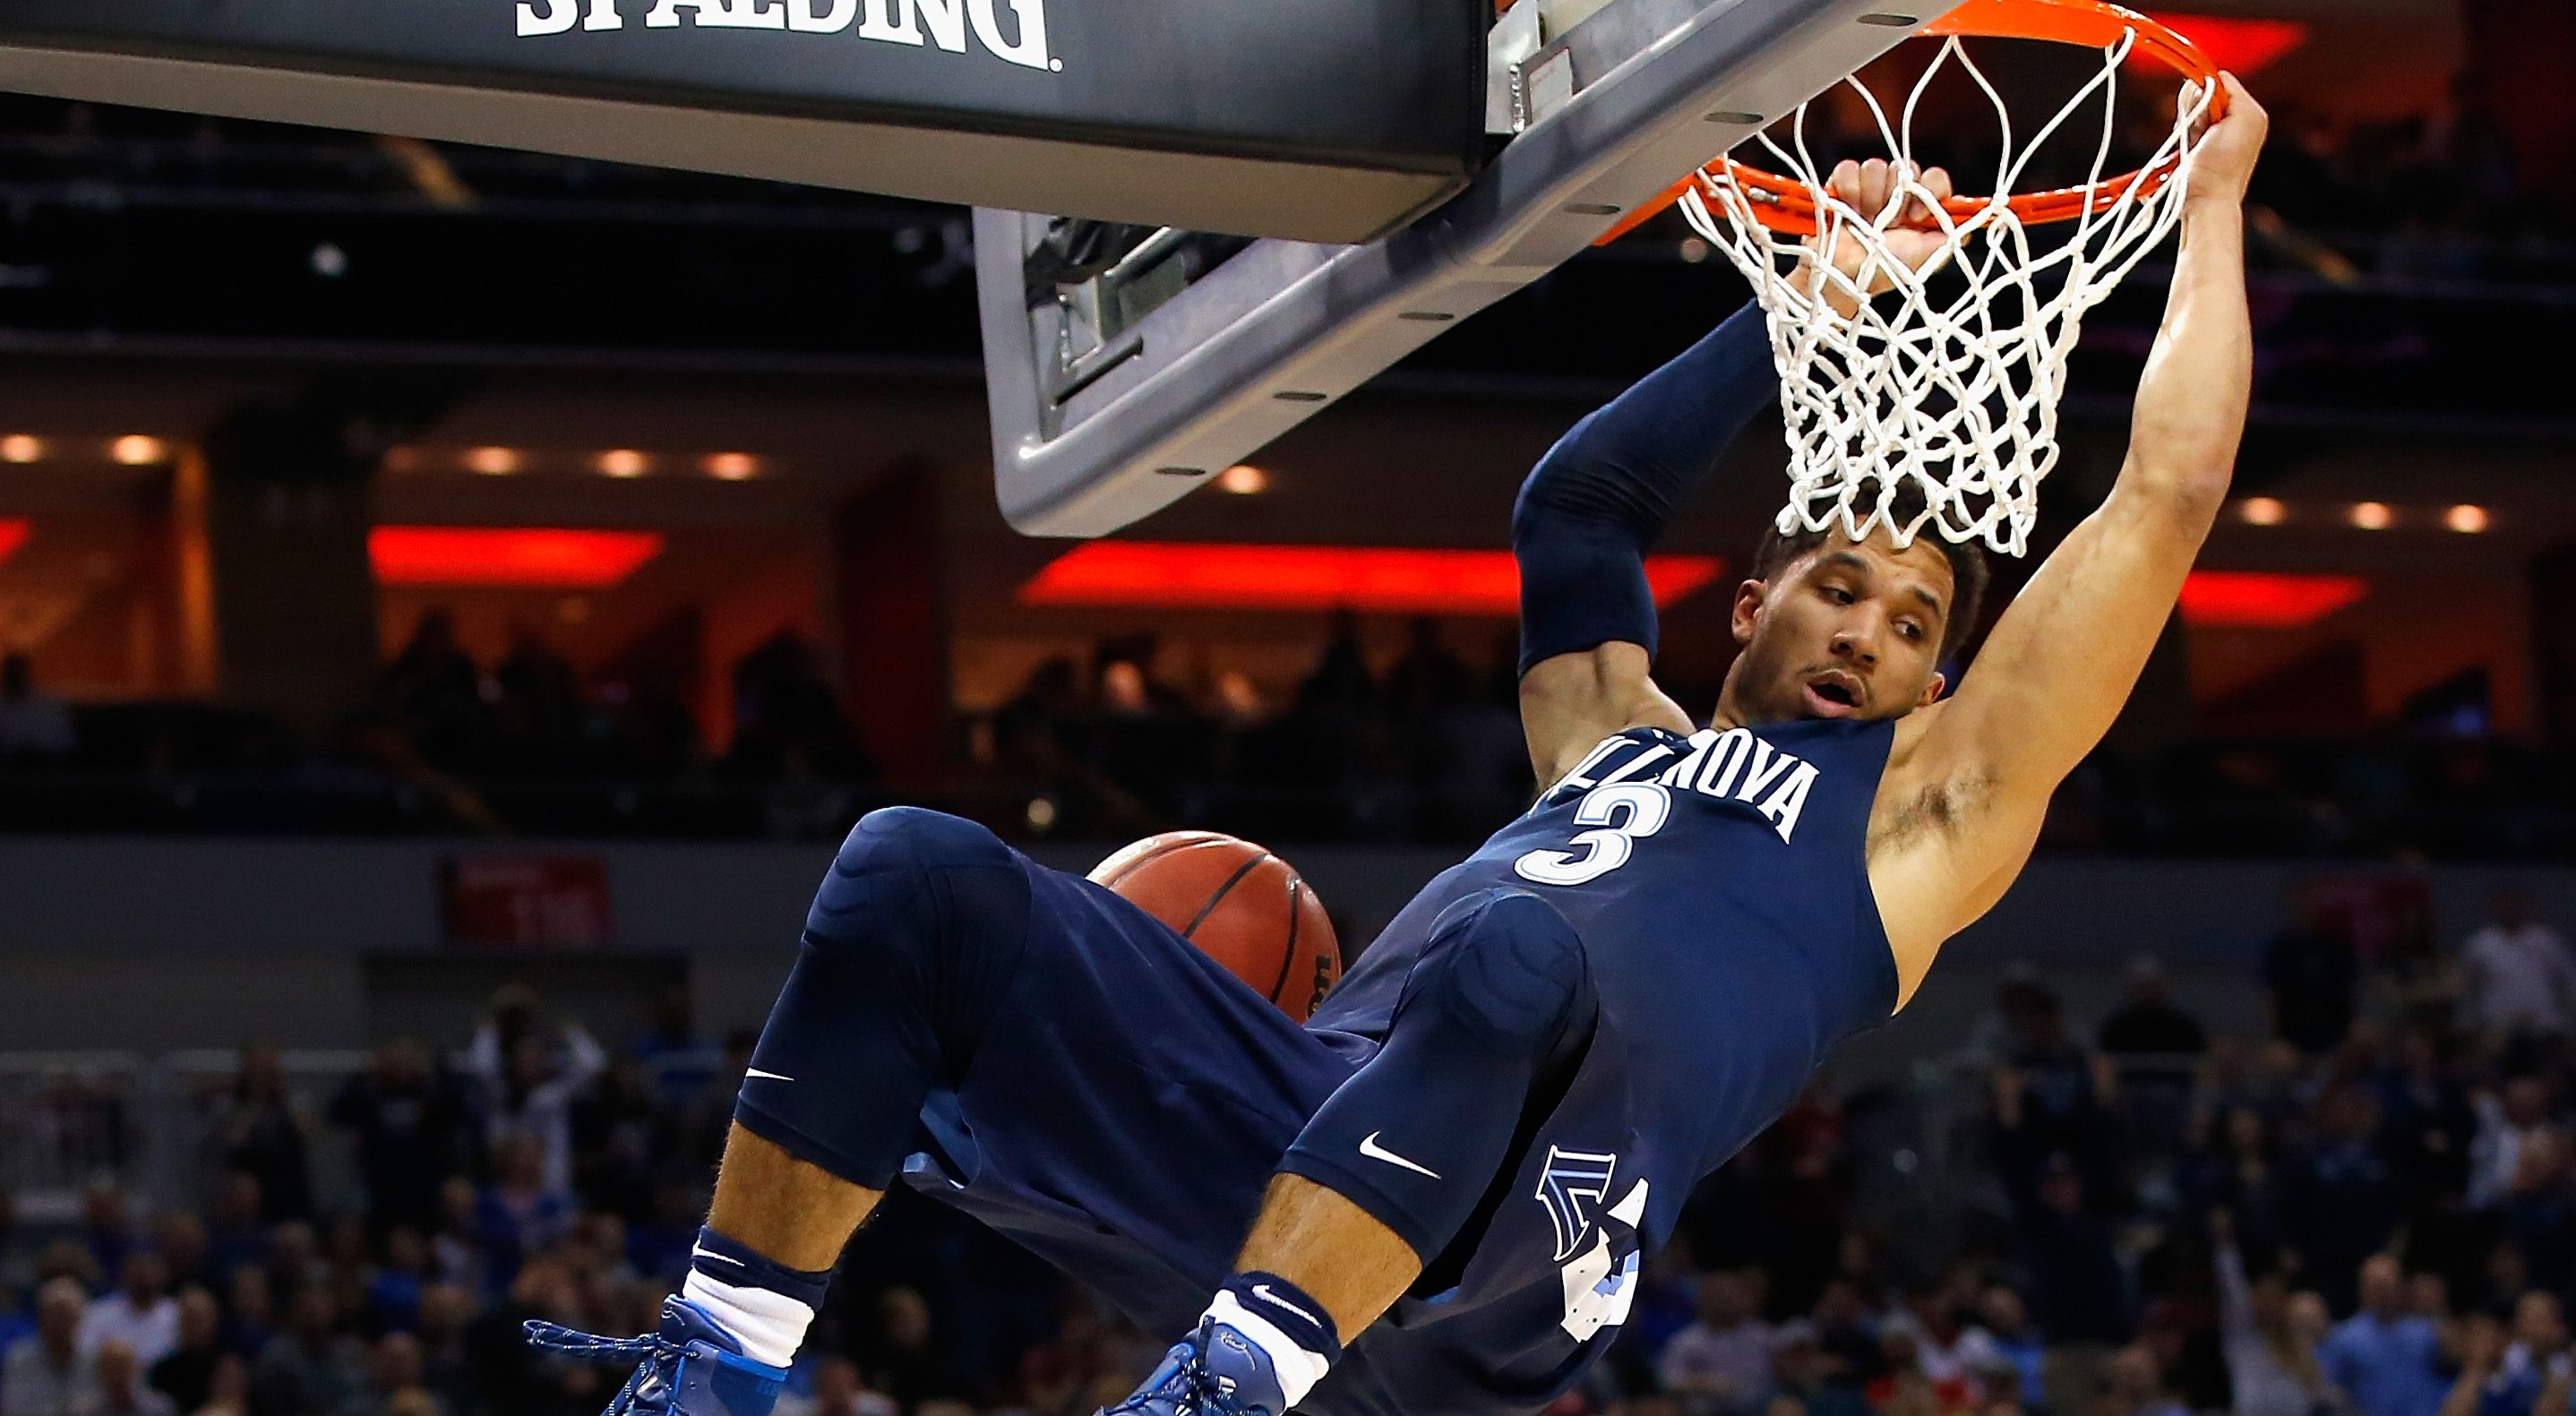 LOUISVILLE, KY - MARCH 26:  Josh Hart #3 of the Villanova Wildcats dunks the ball in the first half against the Kansas Jayhawks during the 2016 NCAA Men's Basketball Tournament South Regional at KFC YUM! Center on March 26, 2016 in Louisville, Kentucky.  (Photo by Kevin C. Cox/Getty Images)